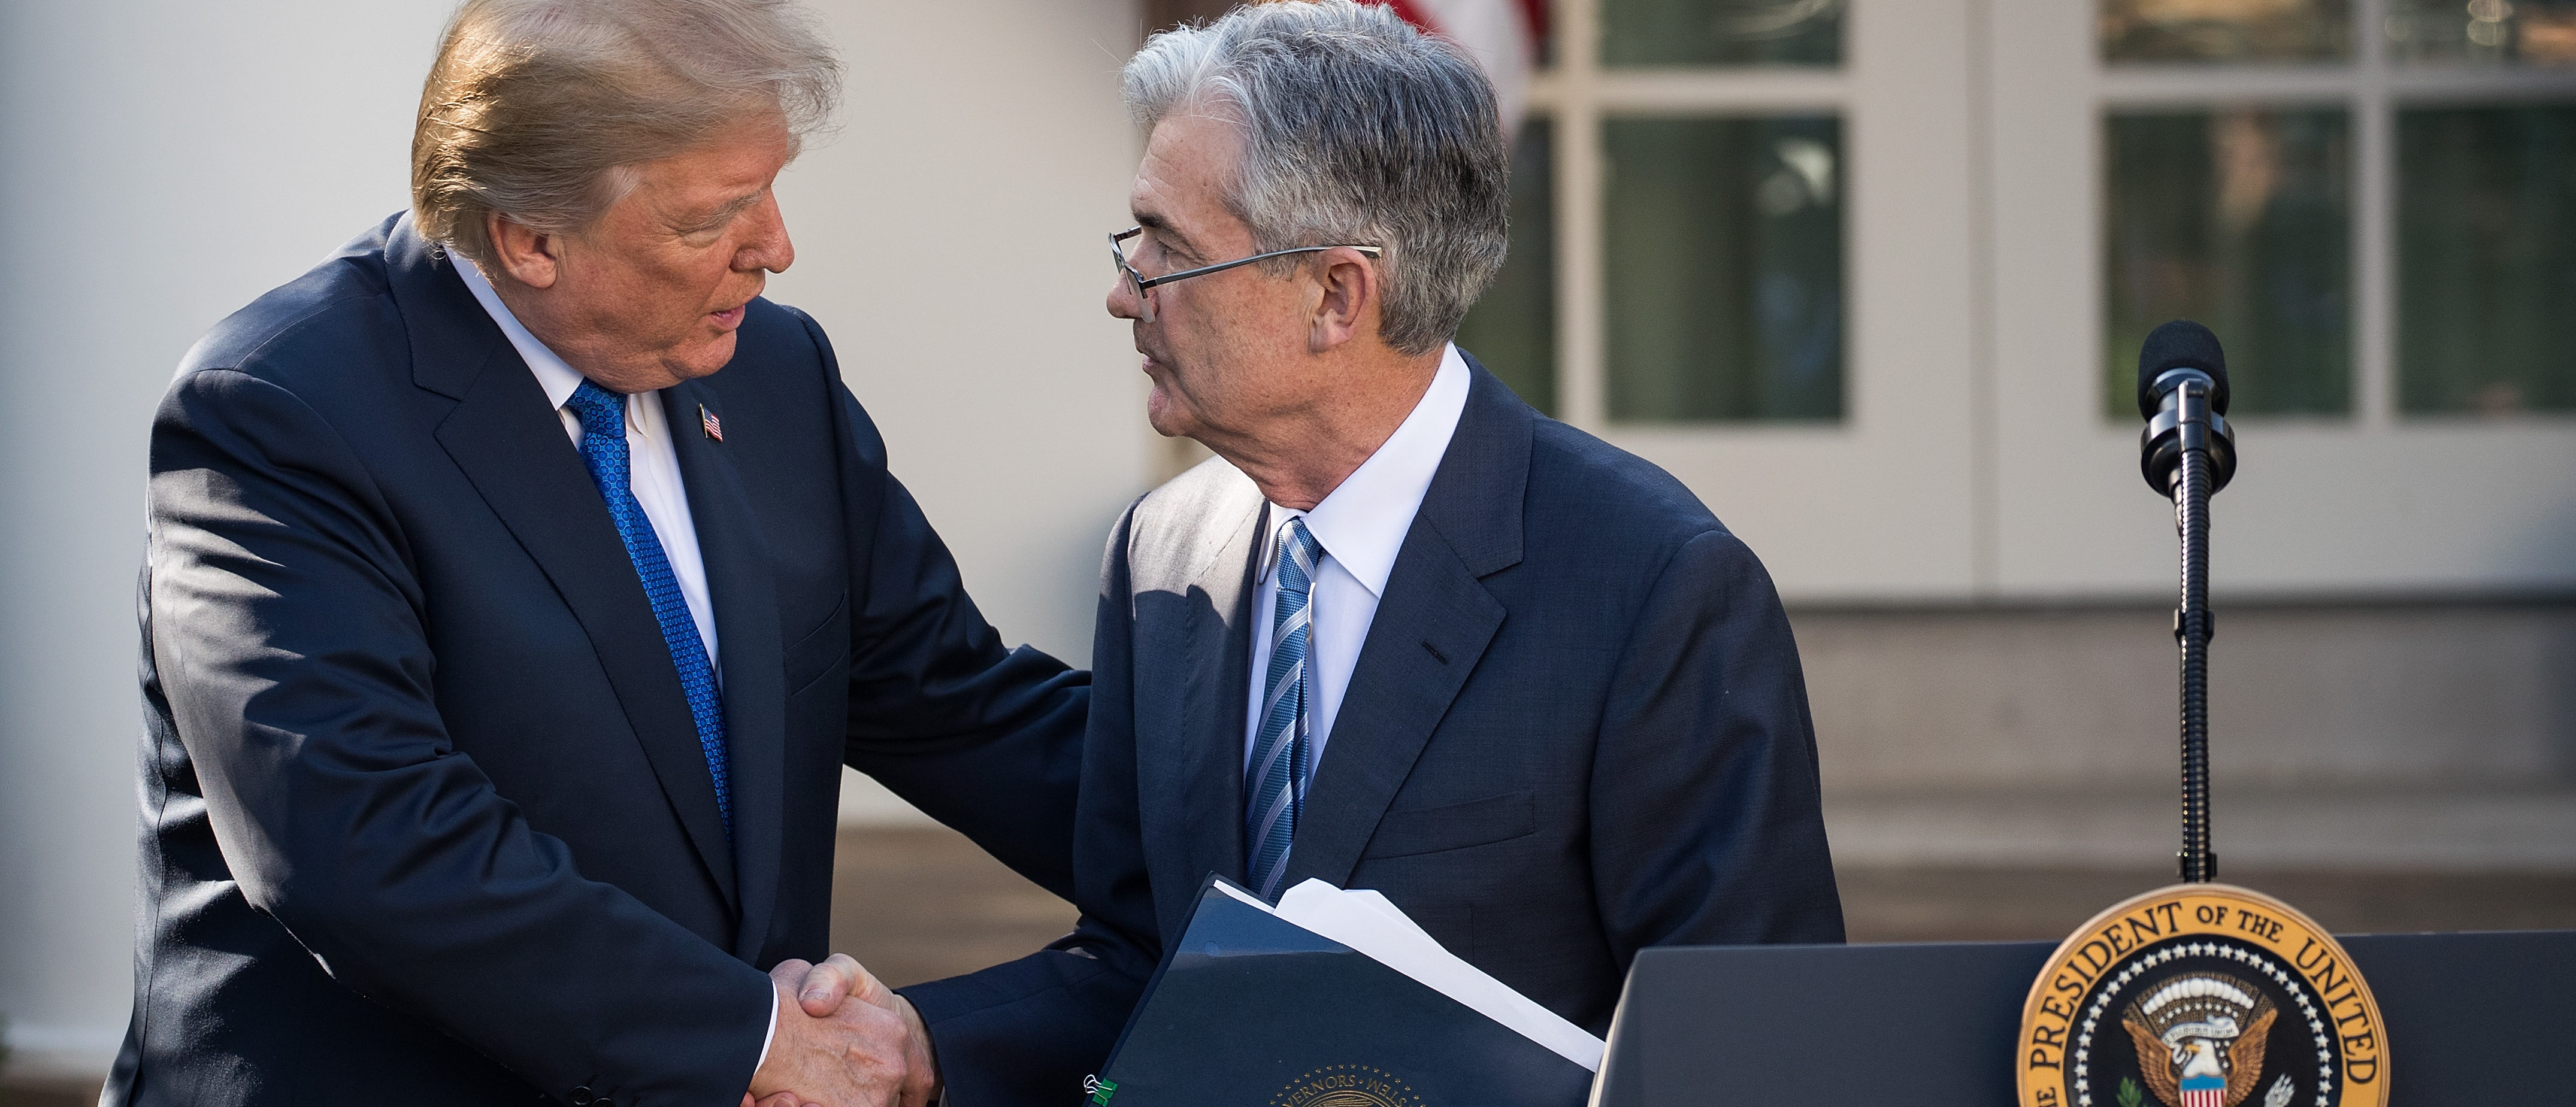 WASHINGTON, DC - NOVEMBER 02: (L to R) U.S. President Donald Trump shakes hands with his nominee for the chairman of the Federal Reserve Jerome Powell during a press event in the Rose Garden at the White House, November 2, 2017 in Washington, DC. Current Federal Reserve chair Janet Yellen's term expires in February. (Photo by Drew Angerer/Getty Images)